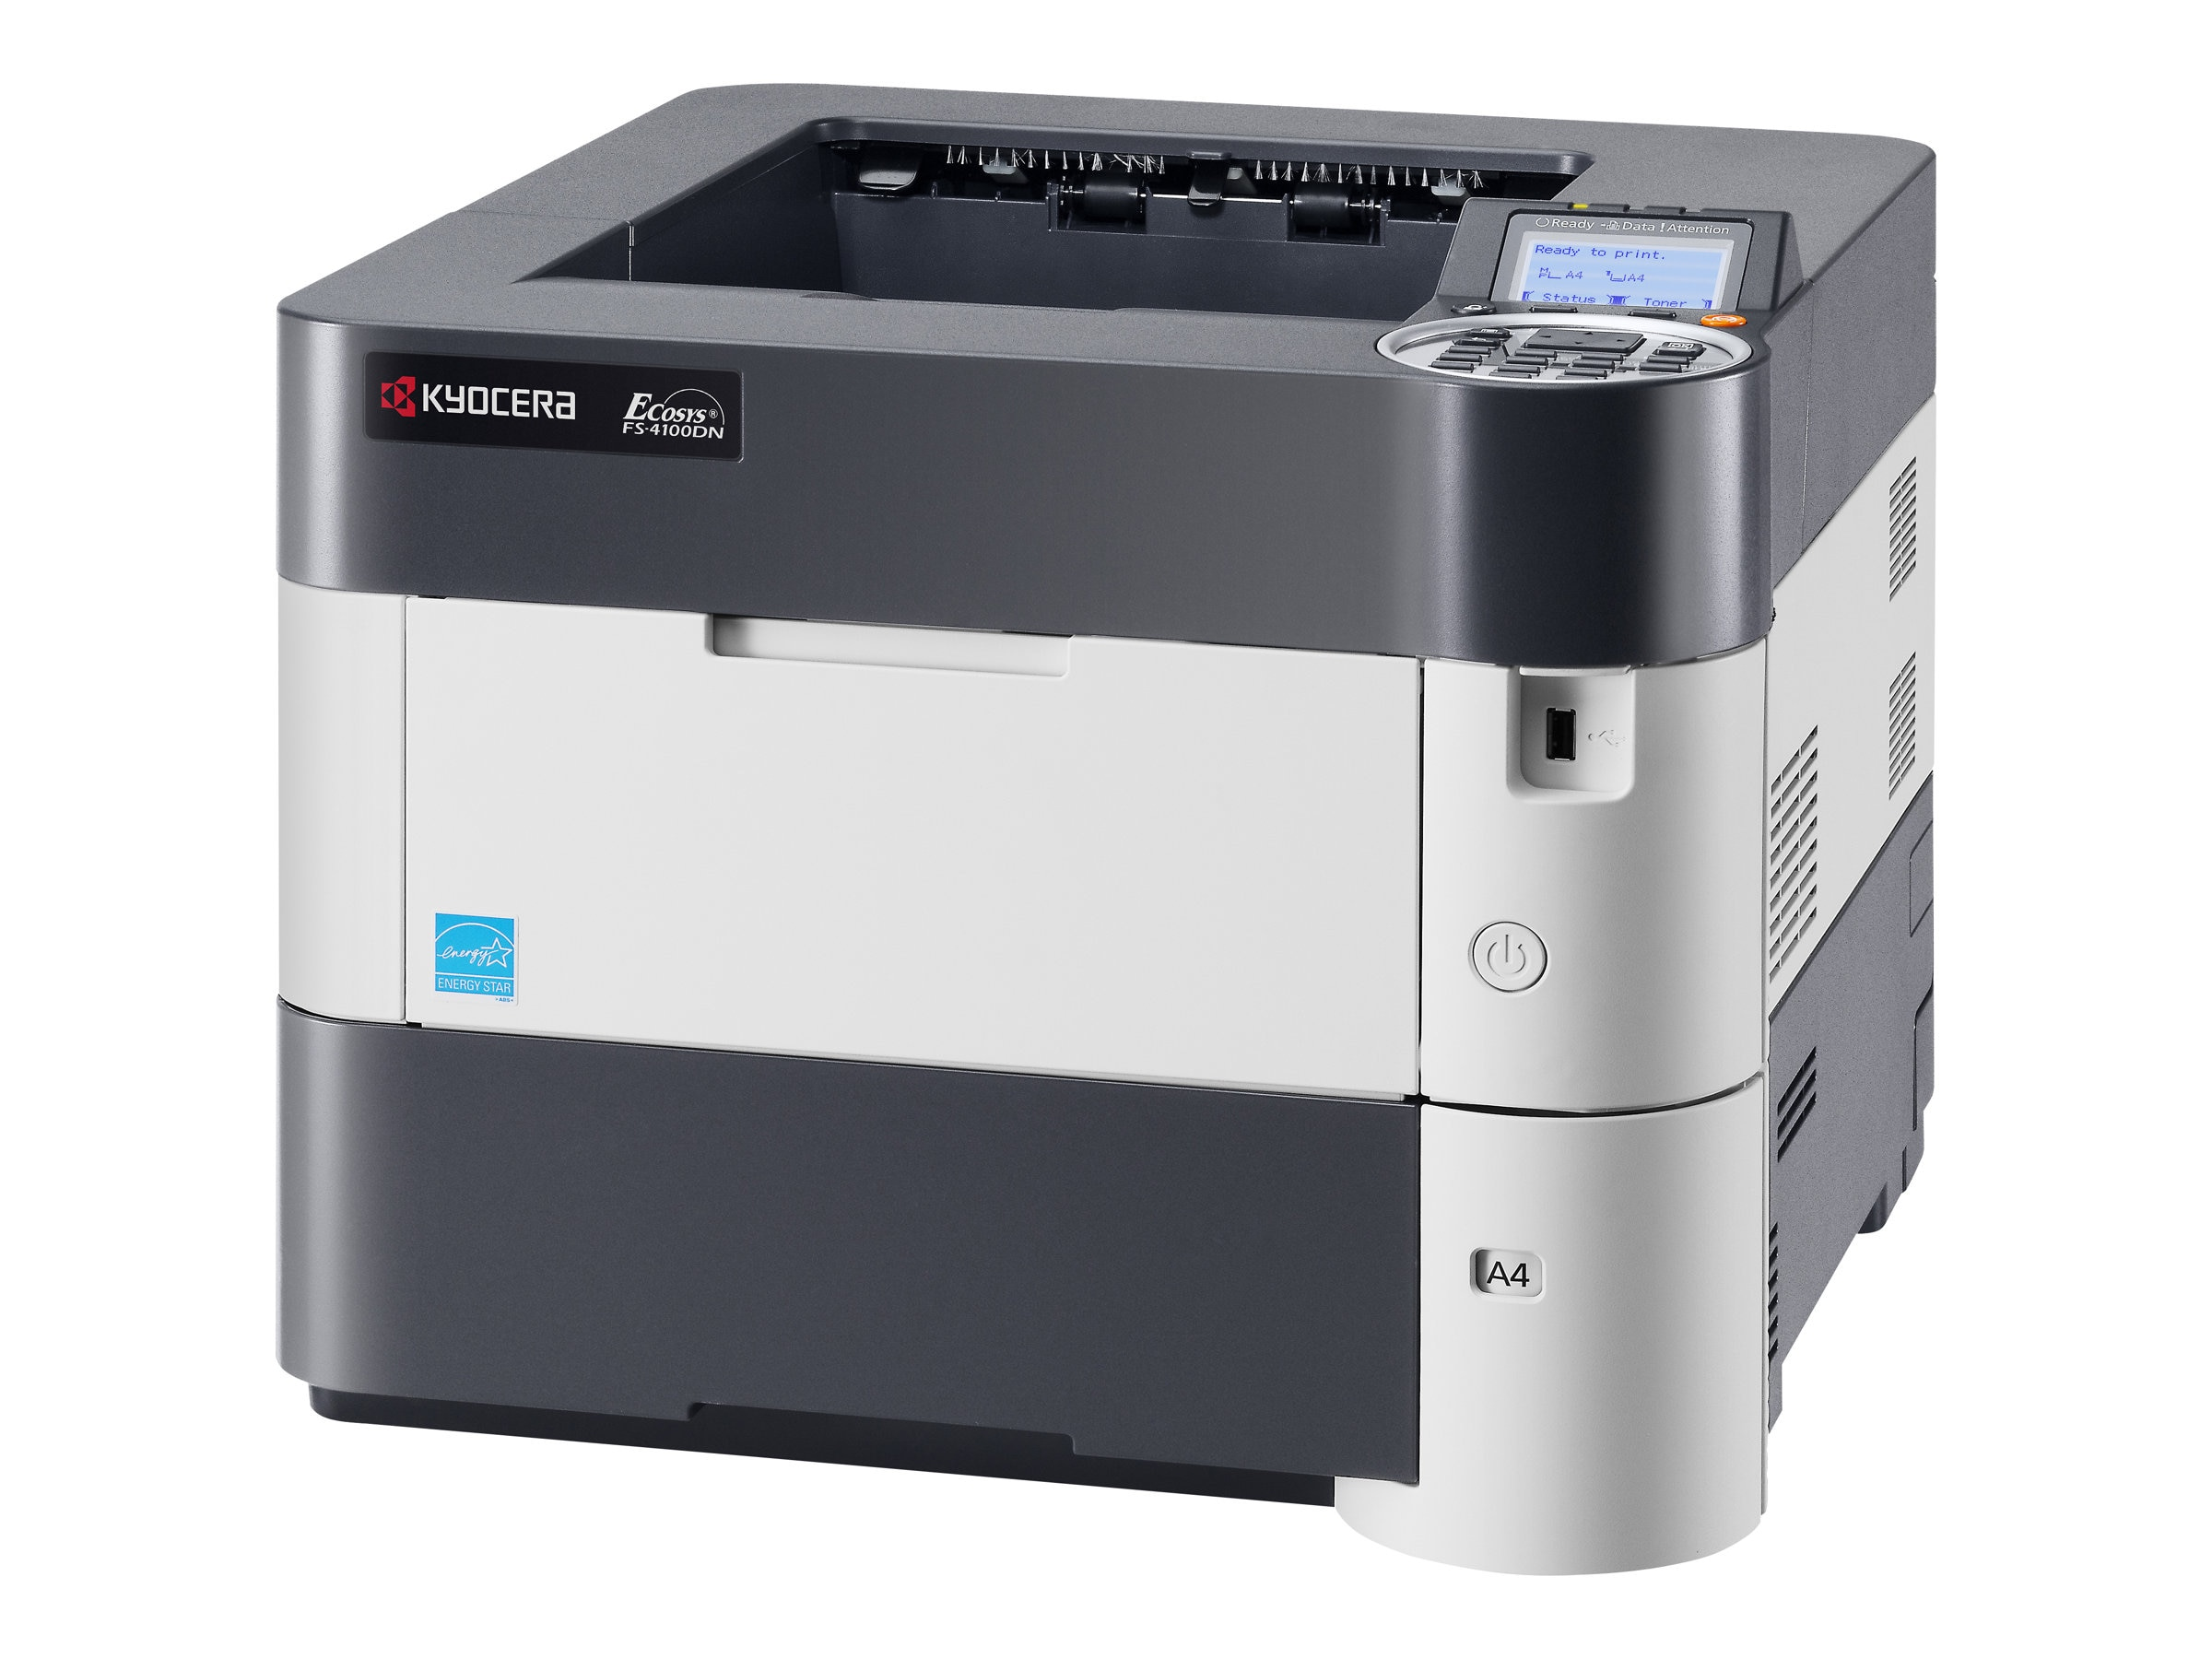 Kyocera FS-4100D Desktop B&W Printer